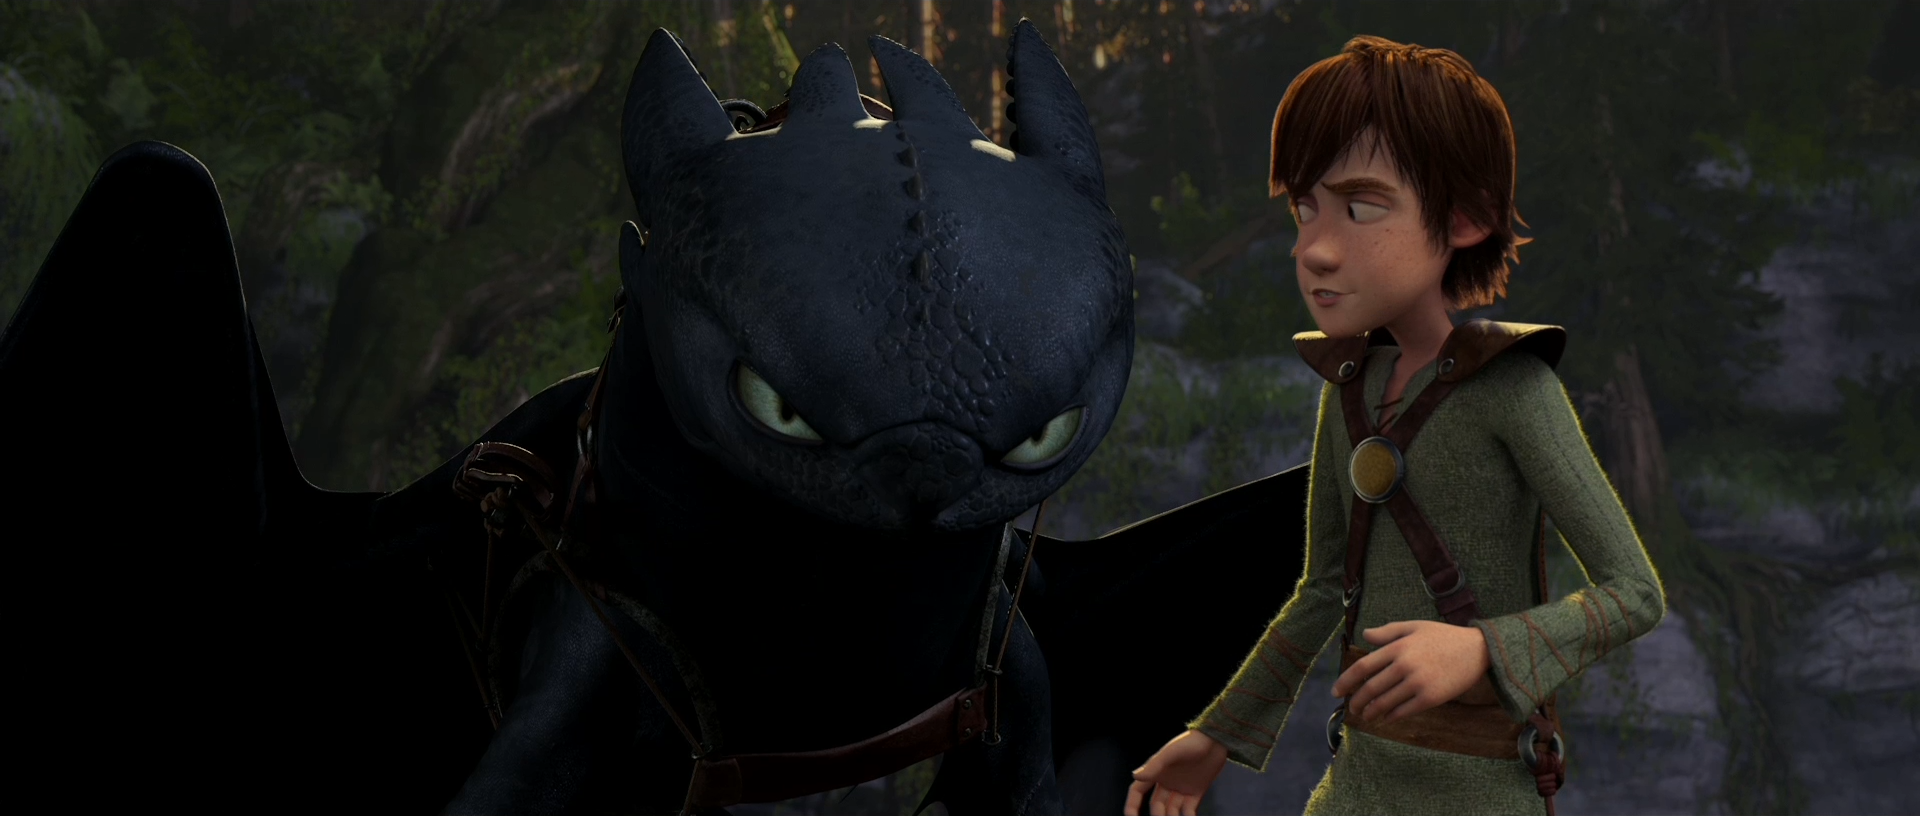 How to train your dragon toothless hiccup by dashiesparkle on how to train your dragon toothless hiccup by dashiesparkle ccuart Images